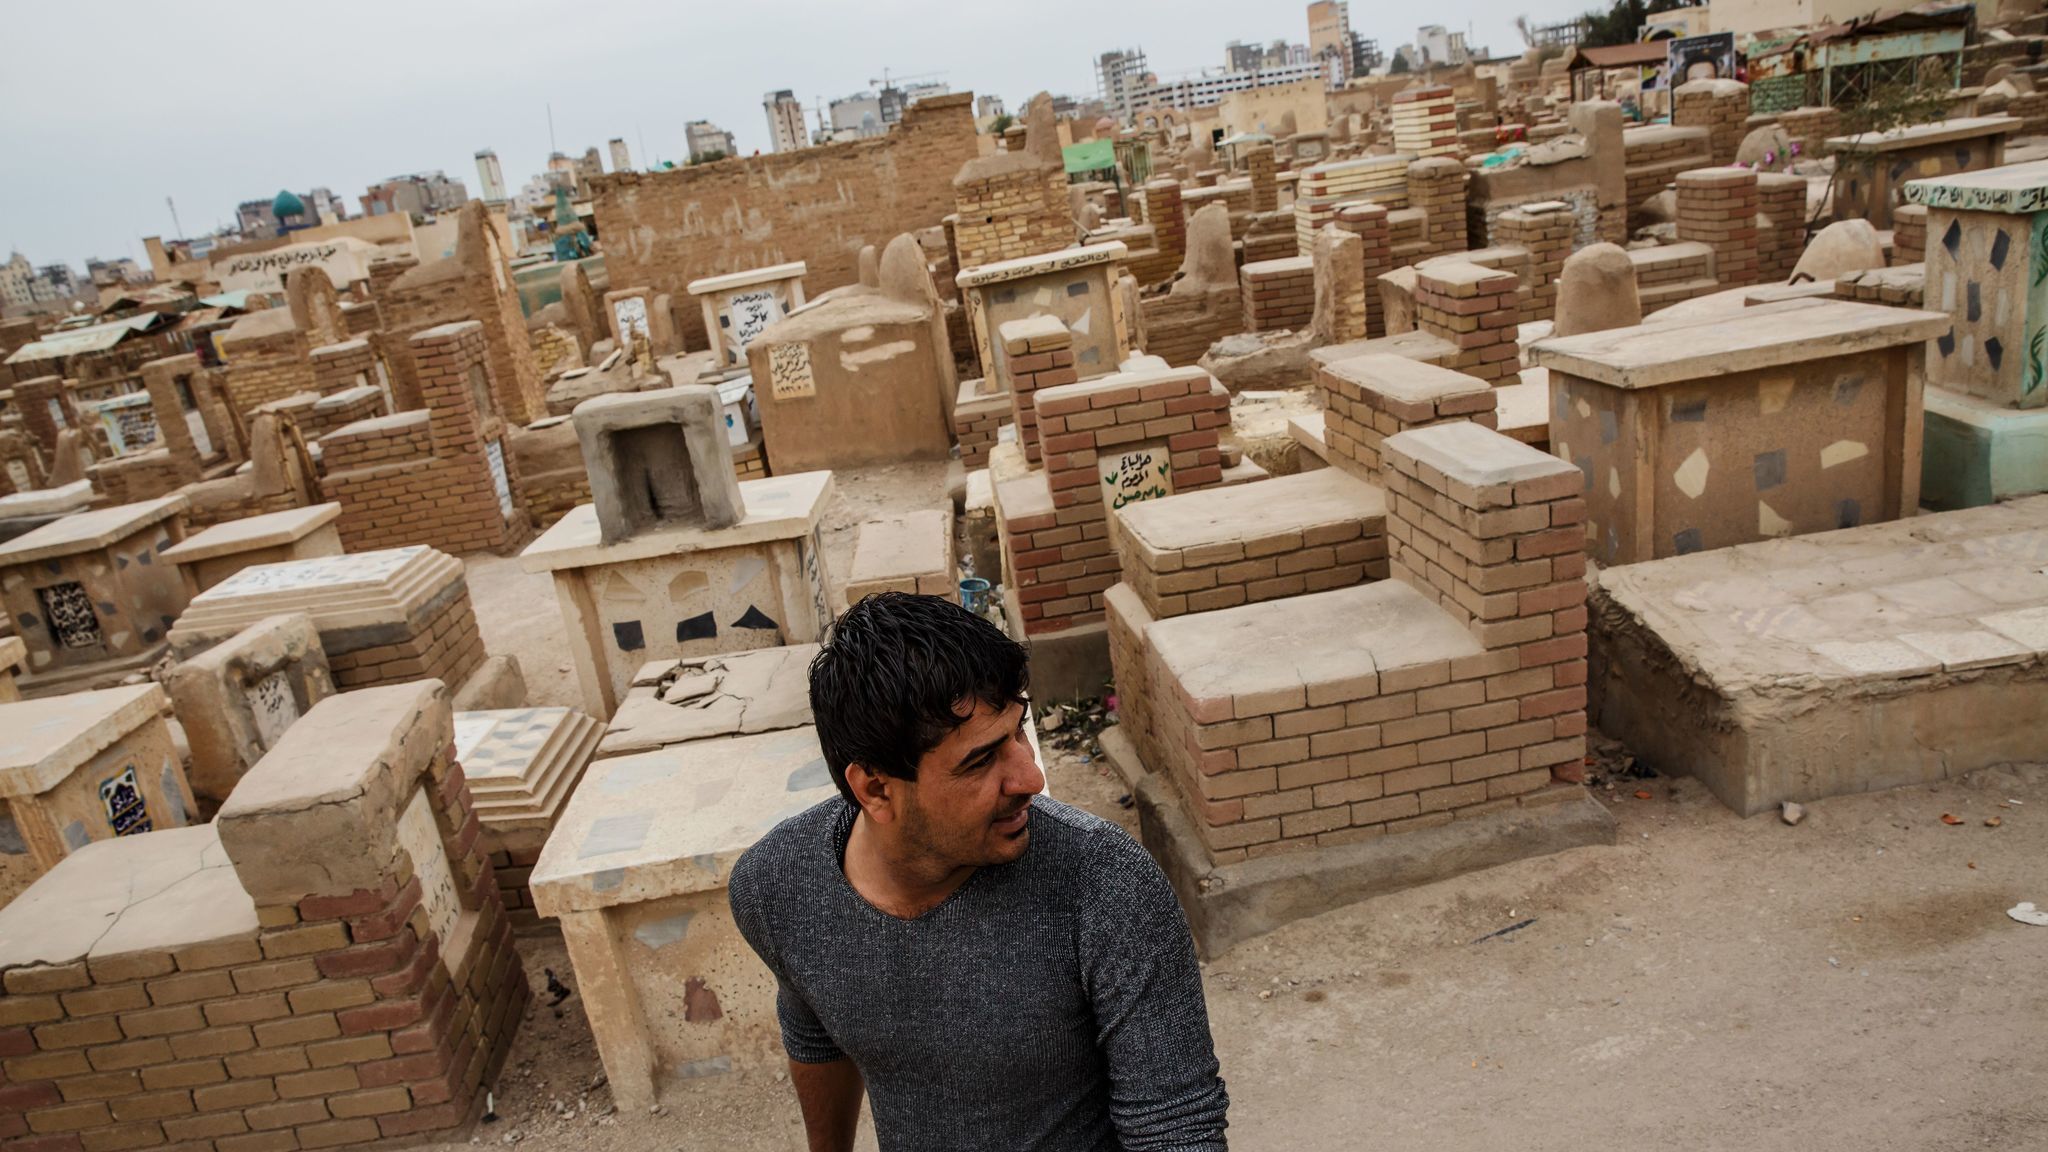 Wissam Daoud visits the holy city of Najaf to pray at a burial ground full of Shiite Muslim comrades who died fighting Islamic State.